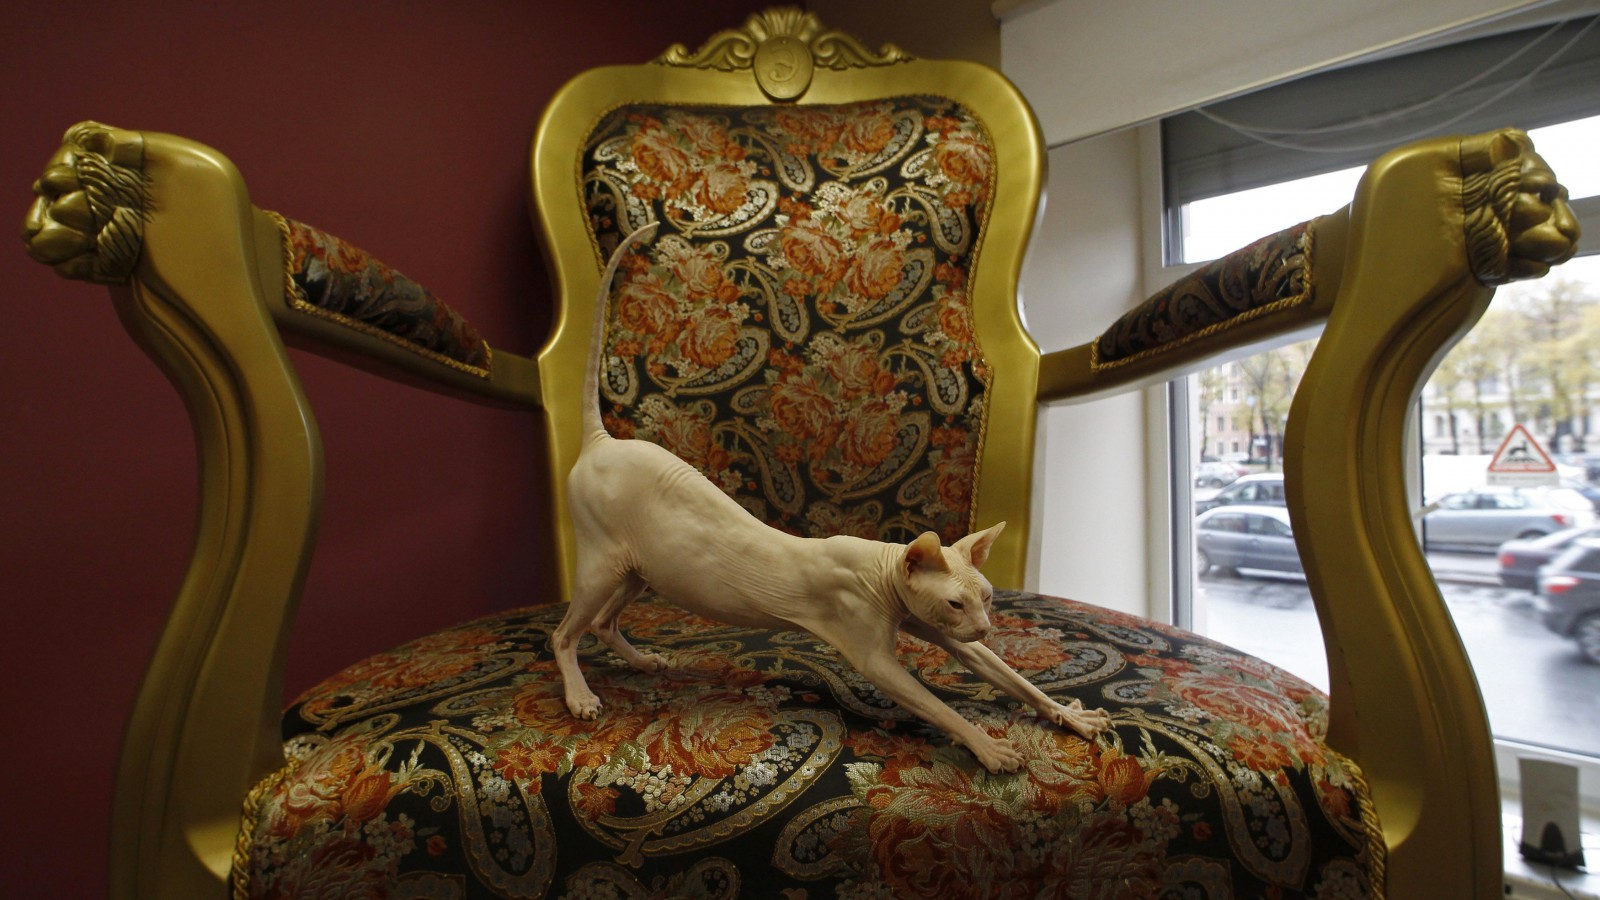 Dyushes, a Don Sphynx cat, stretches on an armchair, Russia.